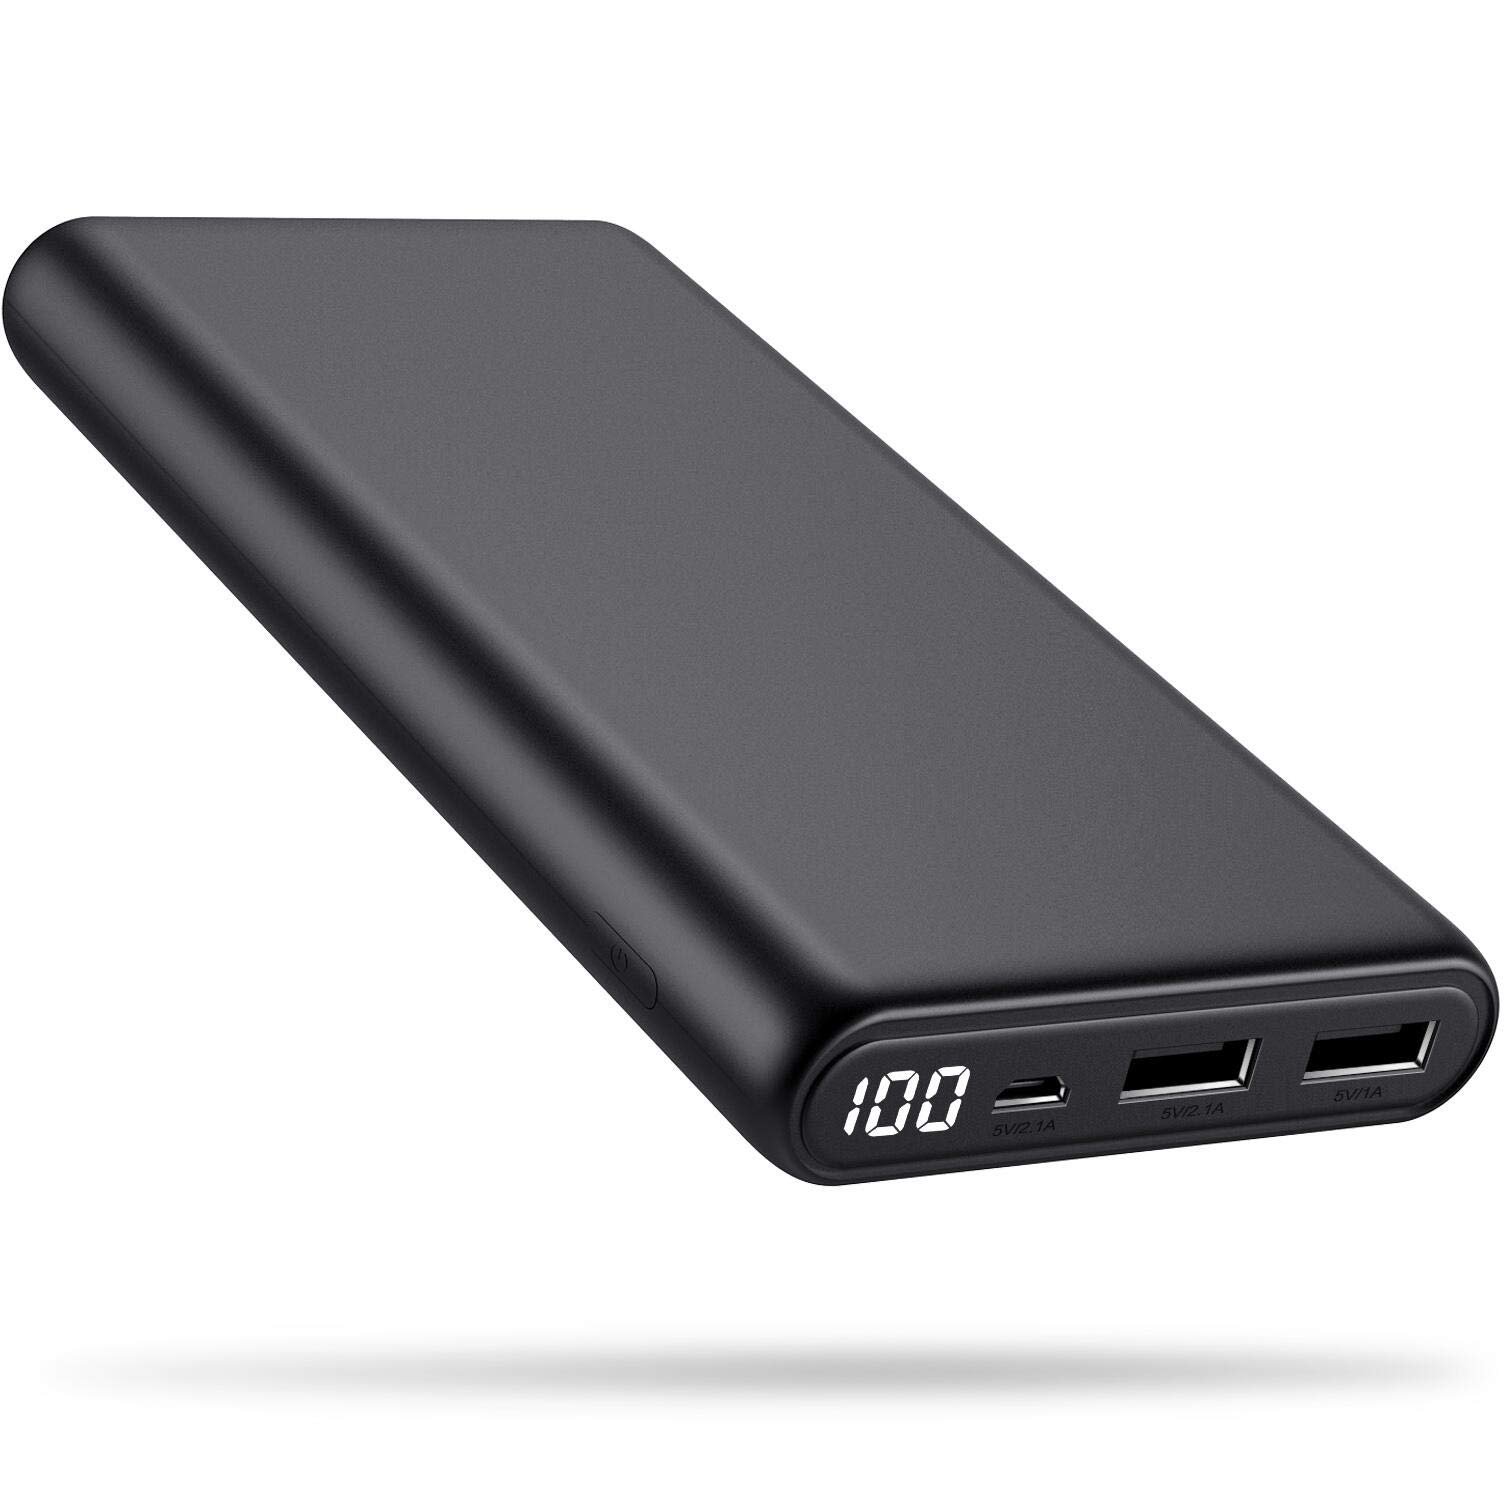 Portable Charger 24800mAh High Capacity Power Bank Enhanced External Battery Packs Charger Dual Output with LCD Digital Display Charging Portable Phone Charger for Smartphone, Android,Tablet and More